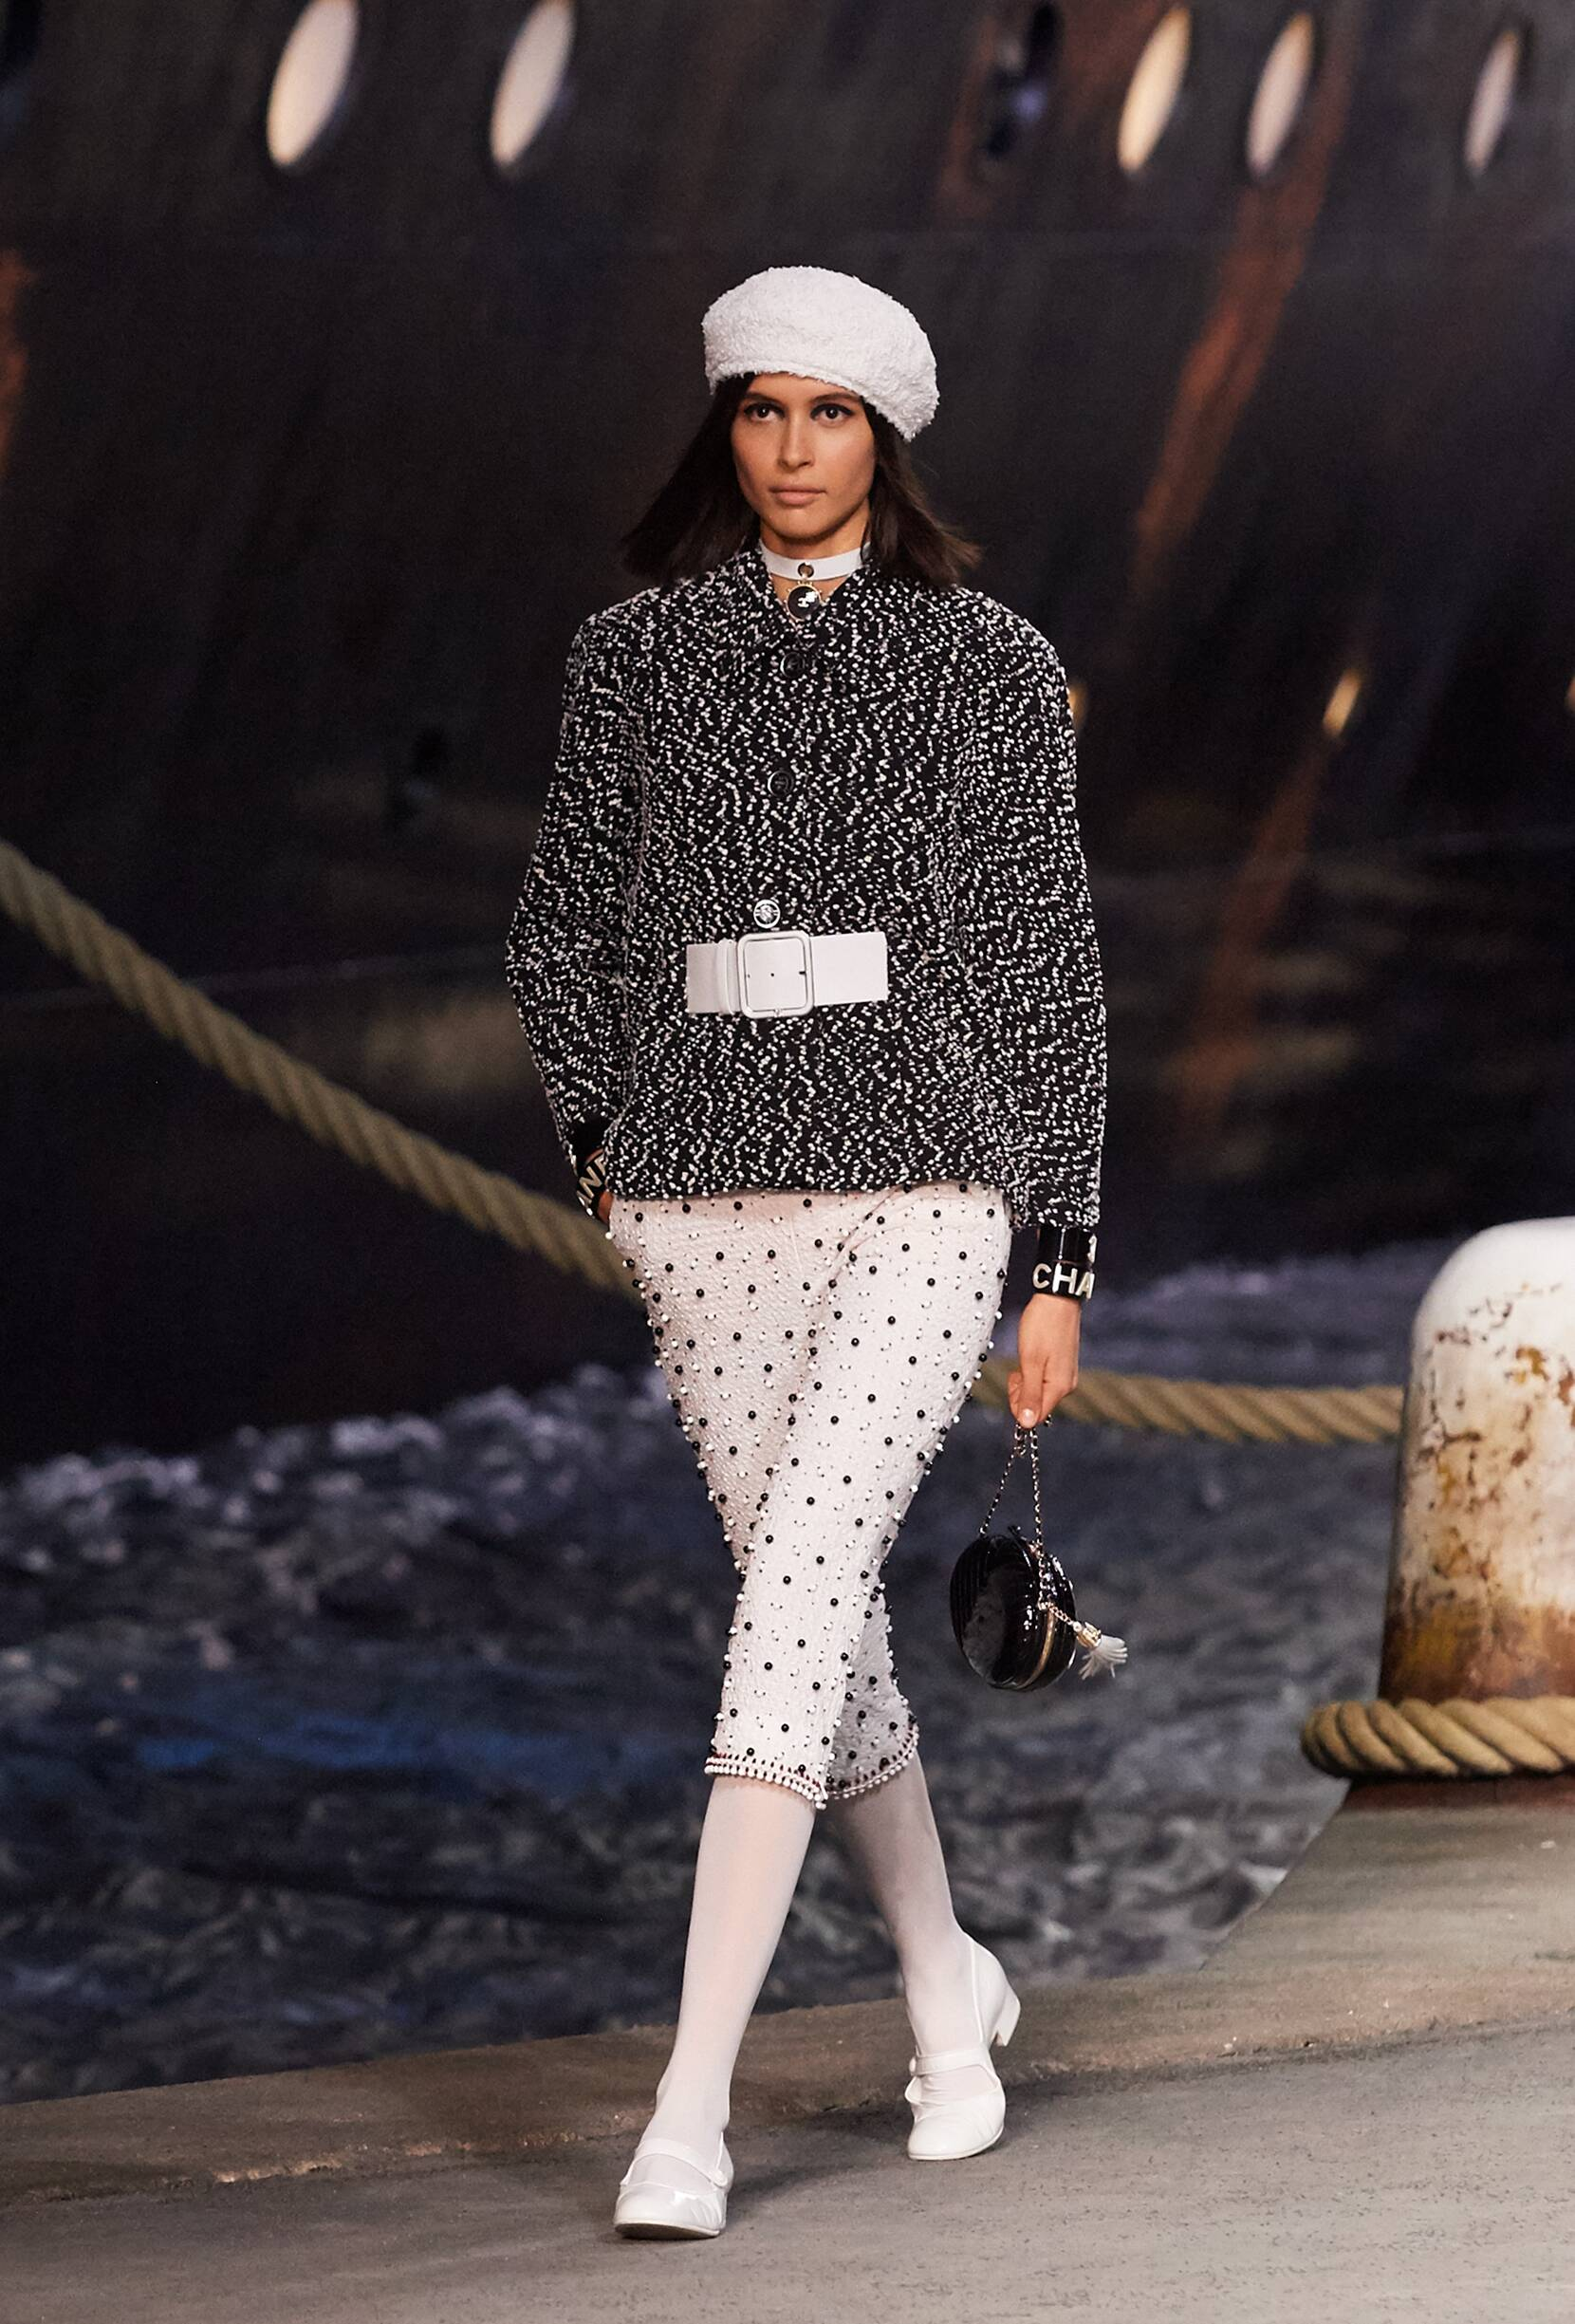 Chanel Cruise Collection 2018-19 Look 23 Paris